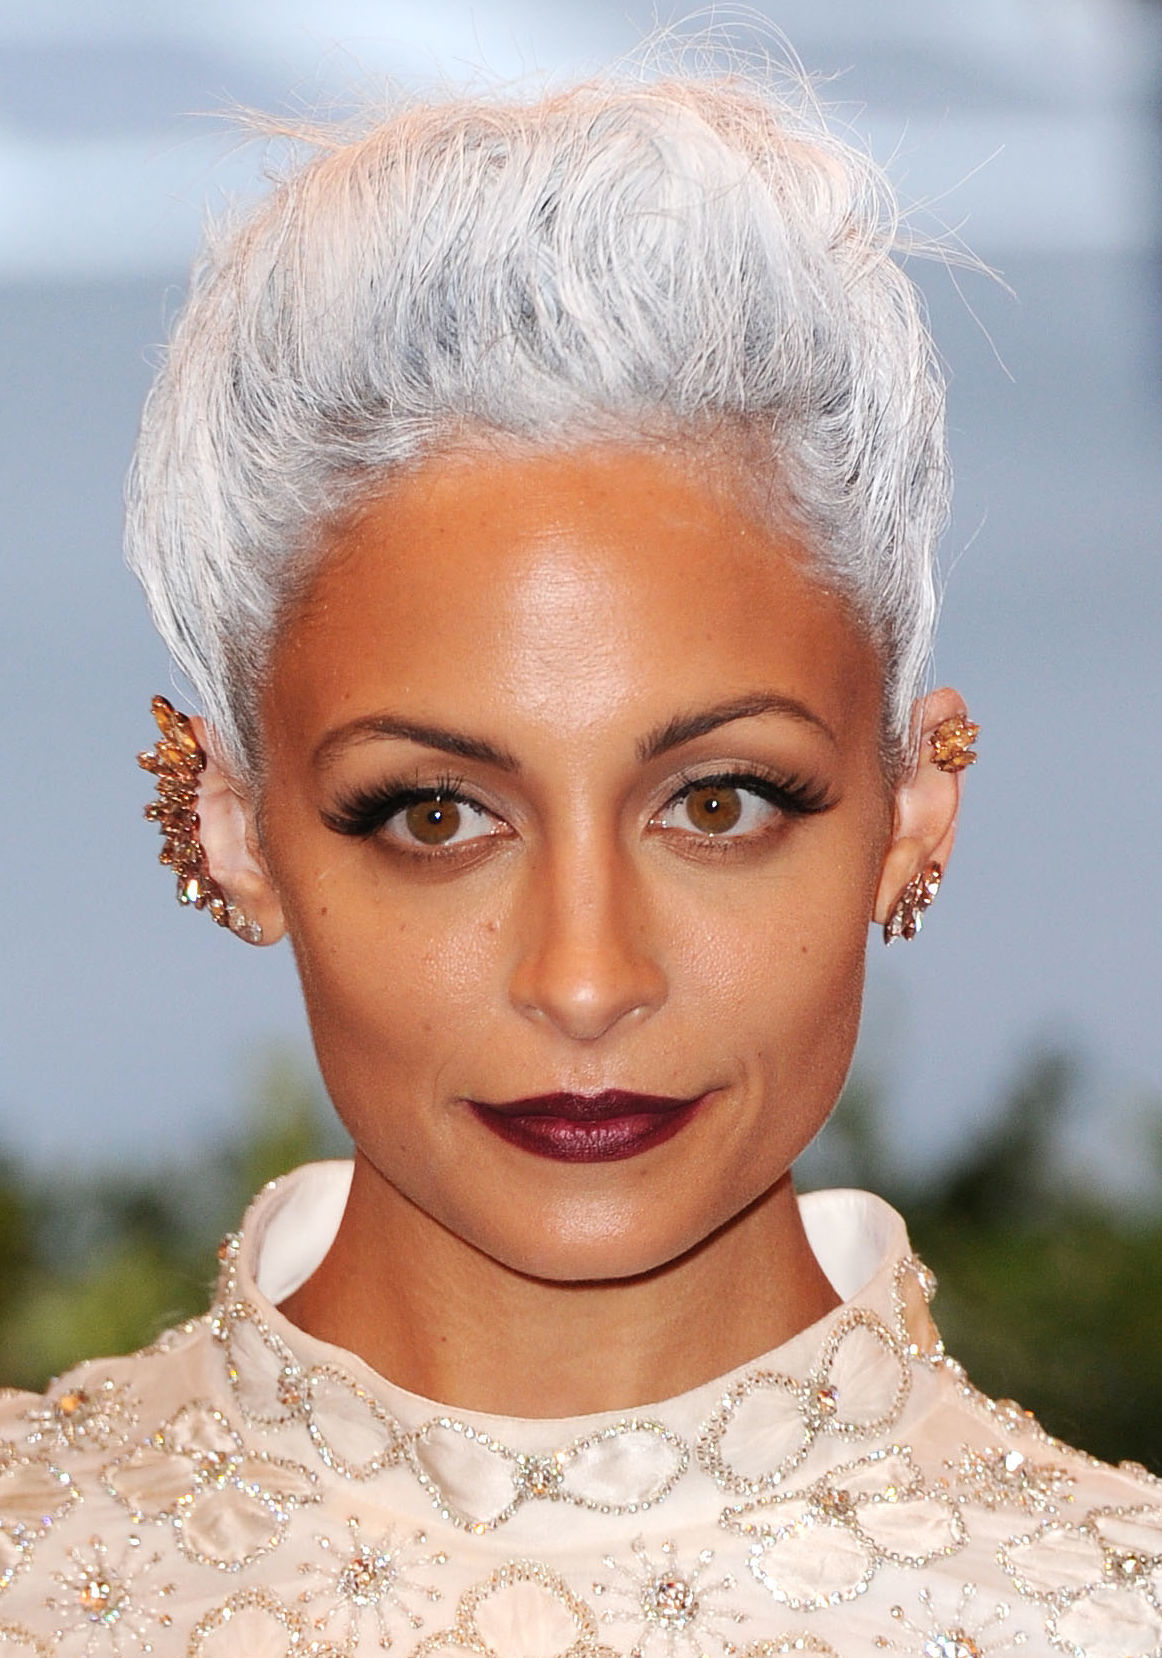 Nicole Richie arrives at the Costume Institute Gala Benefit celebrating the Punk: Chaos To Couture exhibition, Metropolitan Museum of Art in New York on May 6, 2013.